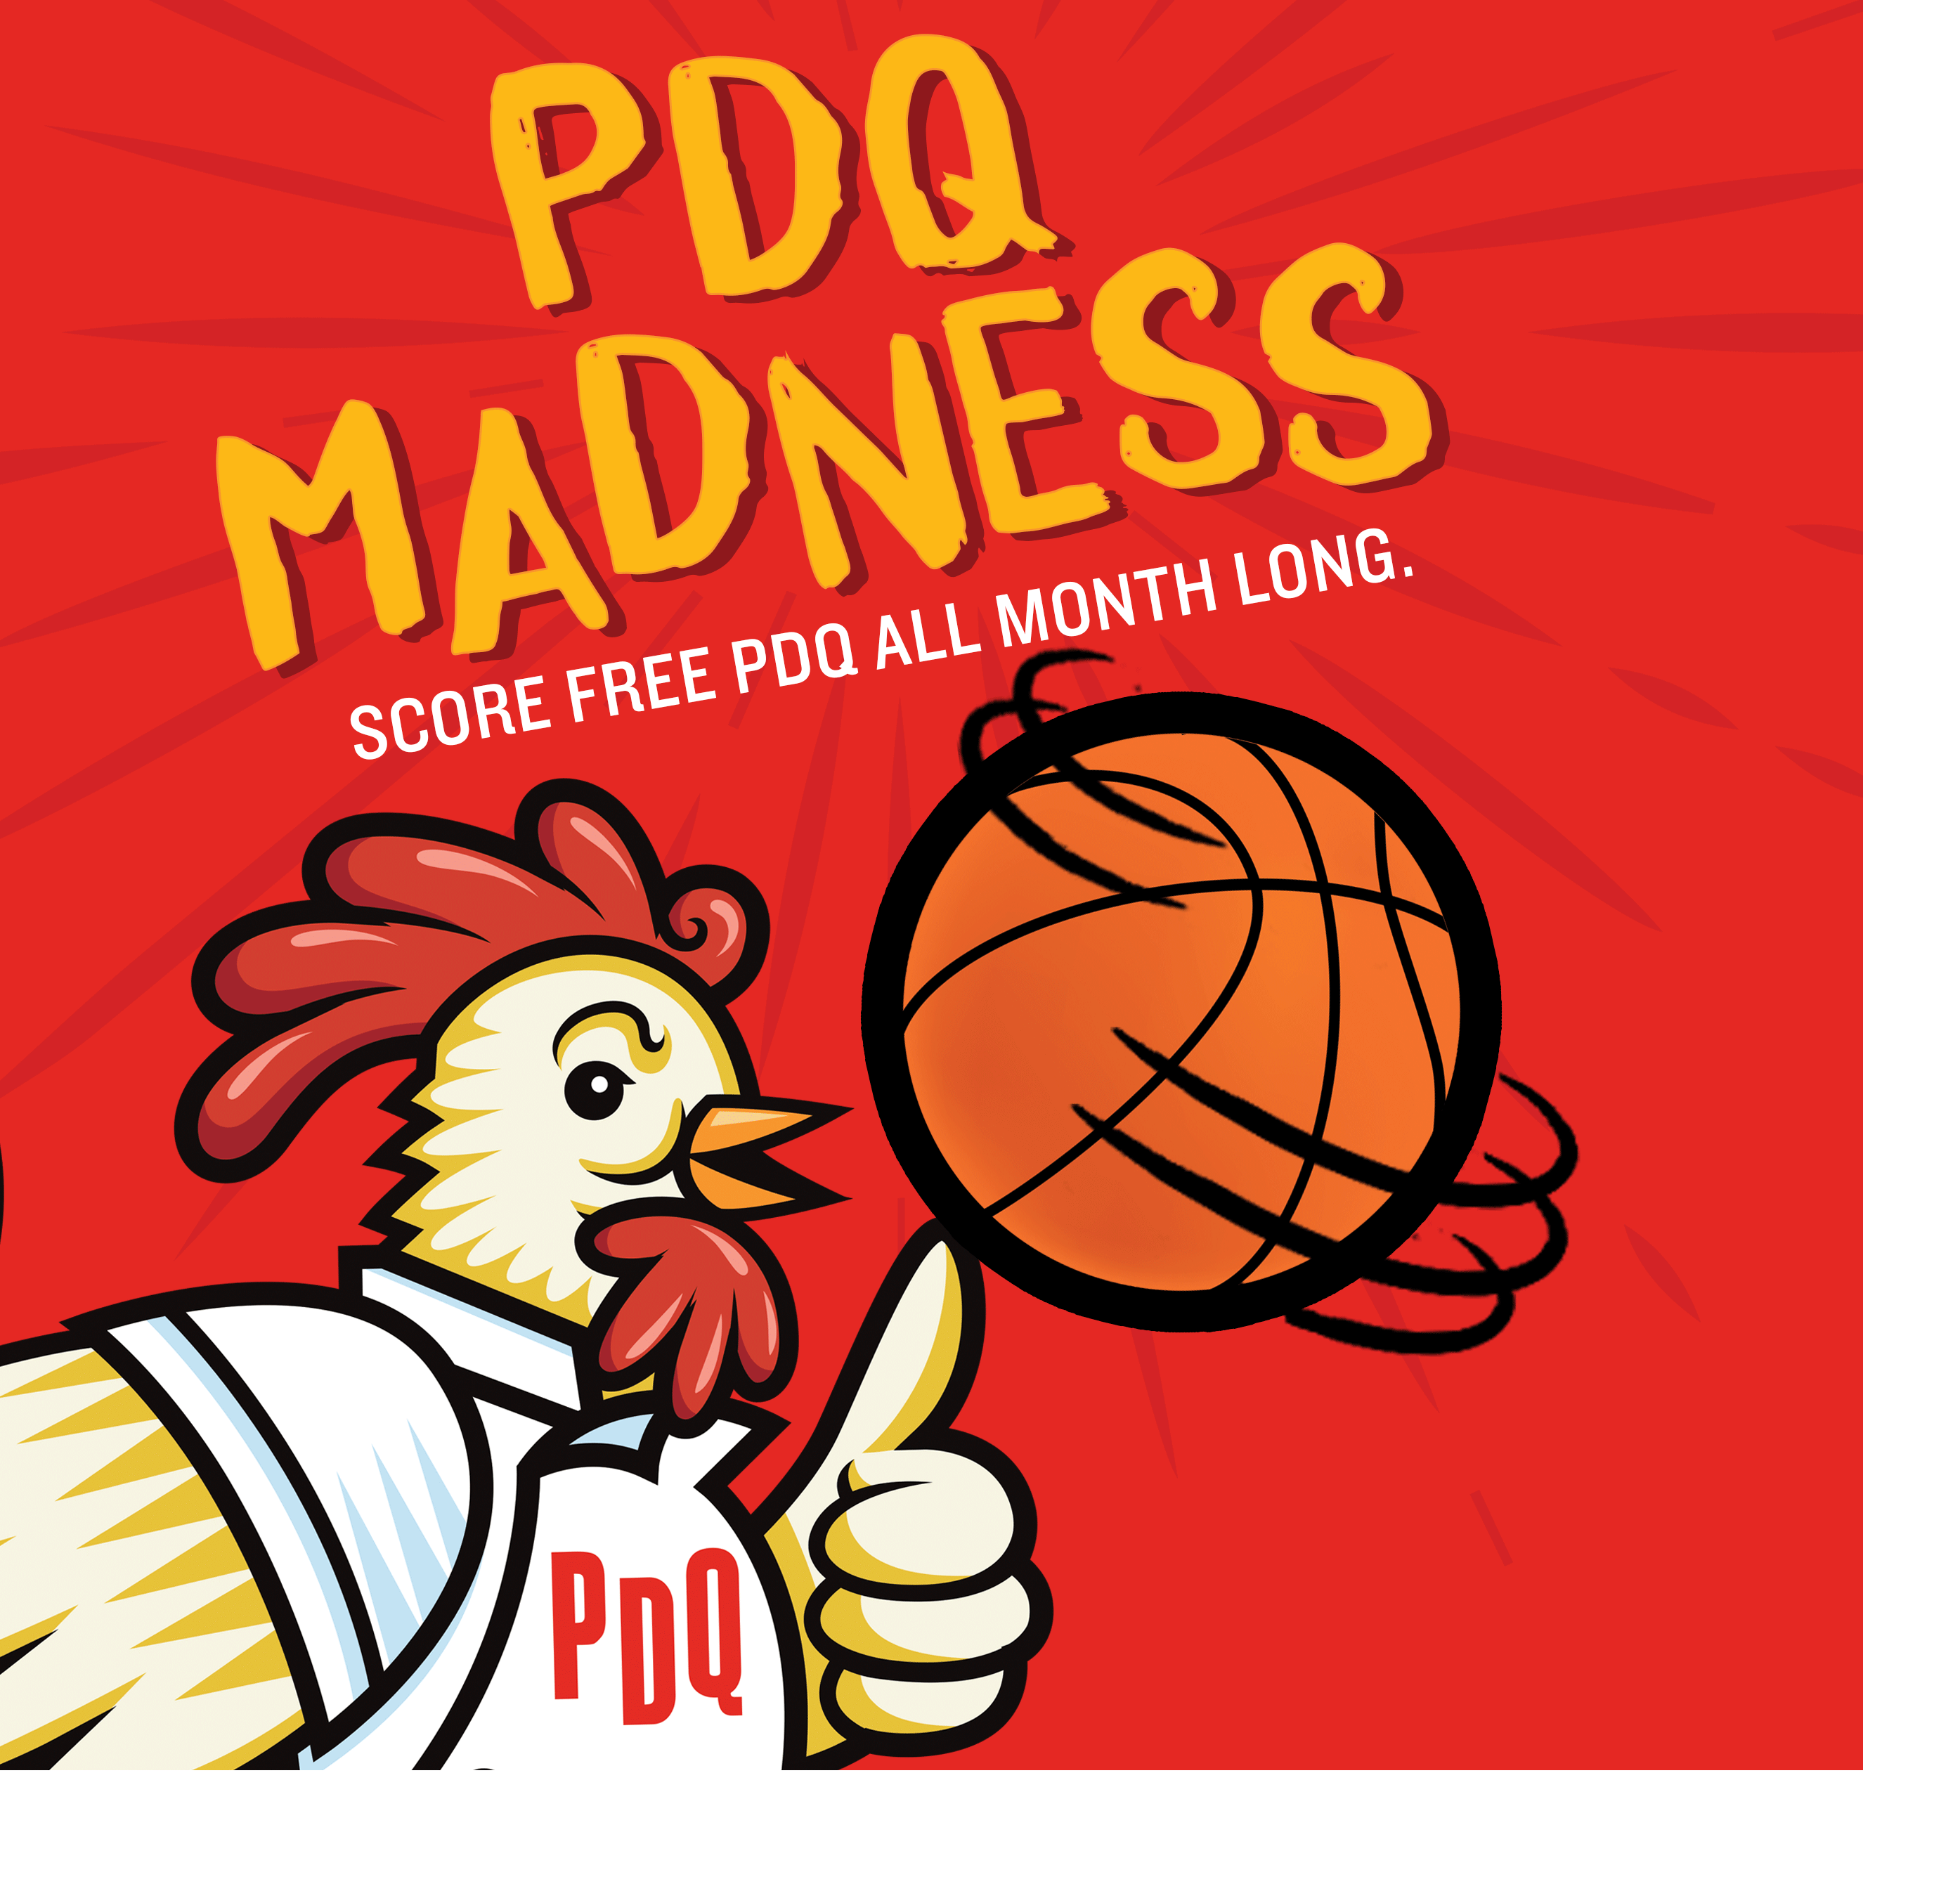 PDQ Madness. Win Free PDQ All Month Long